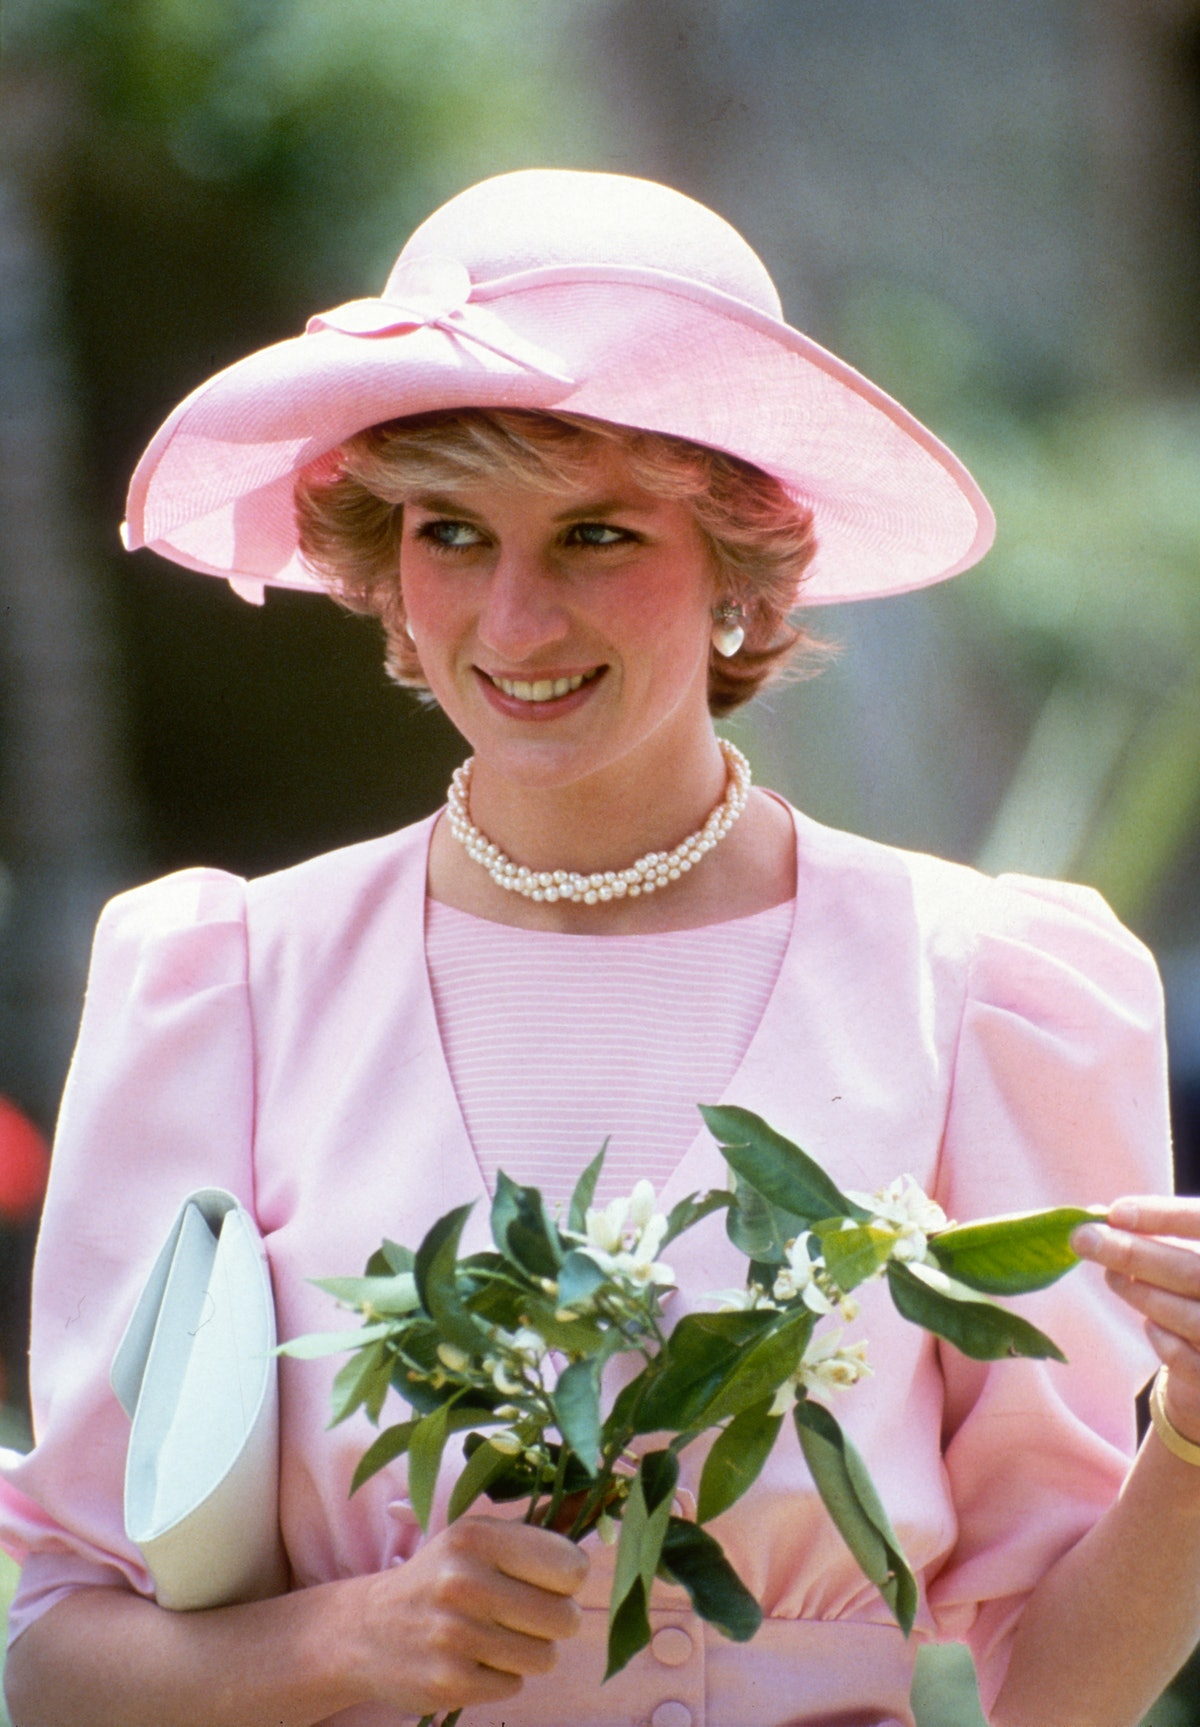 SICILY, ITALY - APRIL 30: Diana, Princess of Wales, wearing a pink dress with puffed sleeves designe...